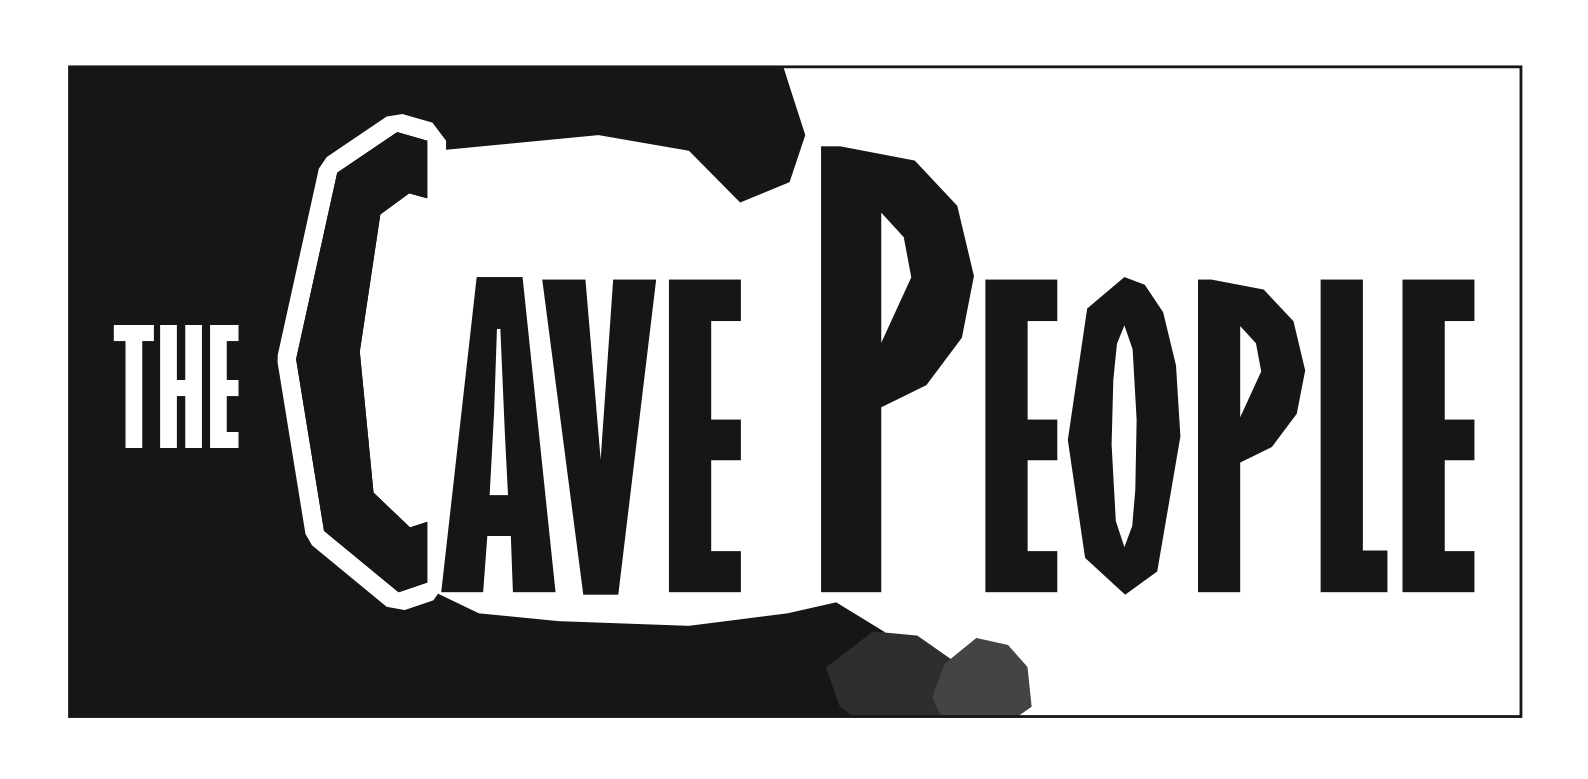 The Cave People - logo